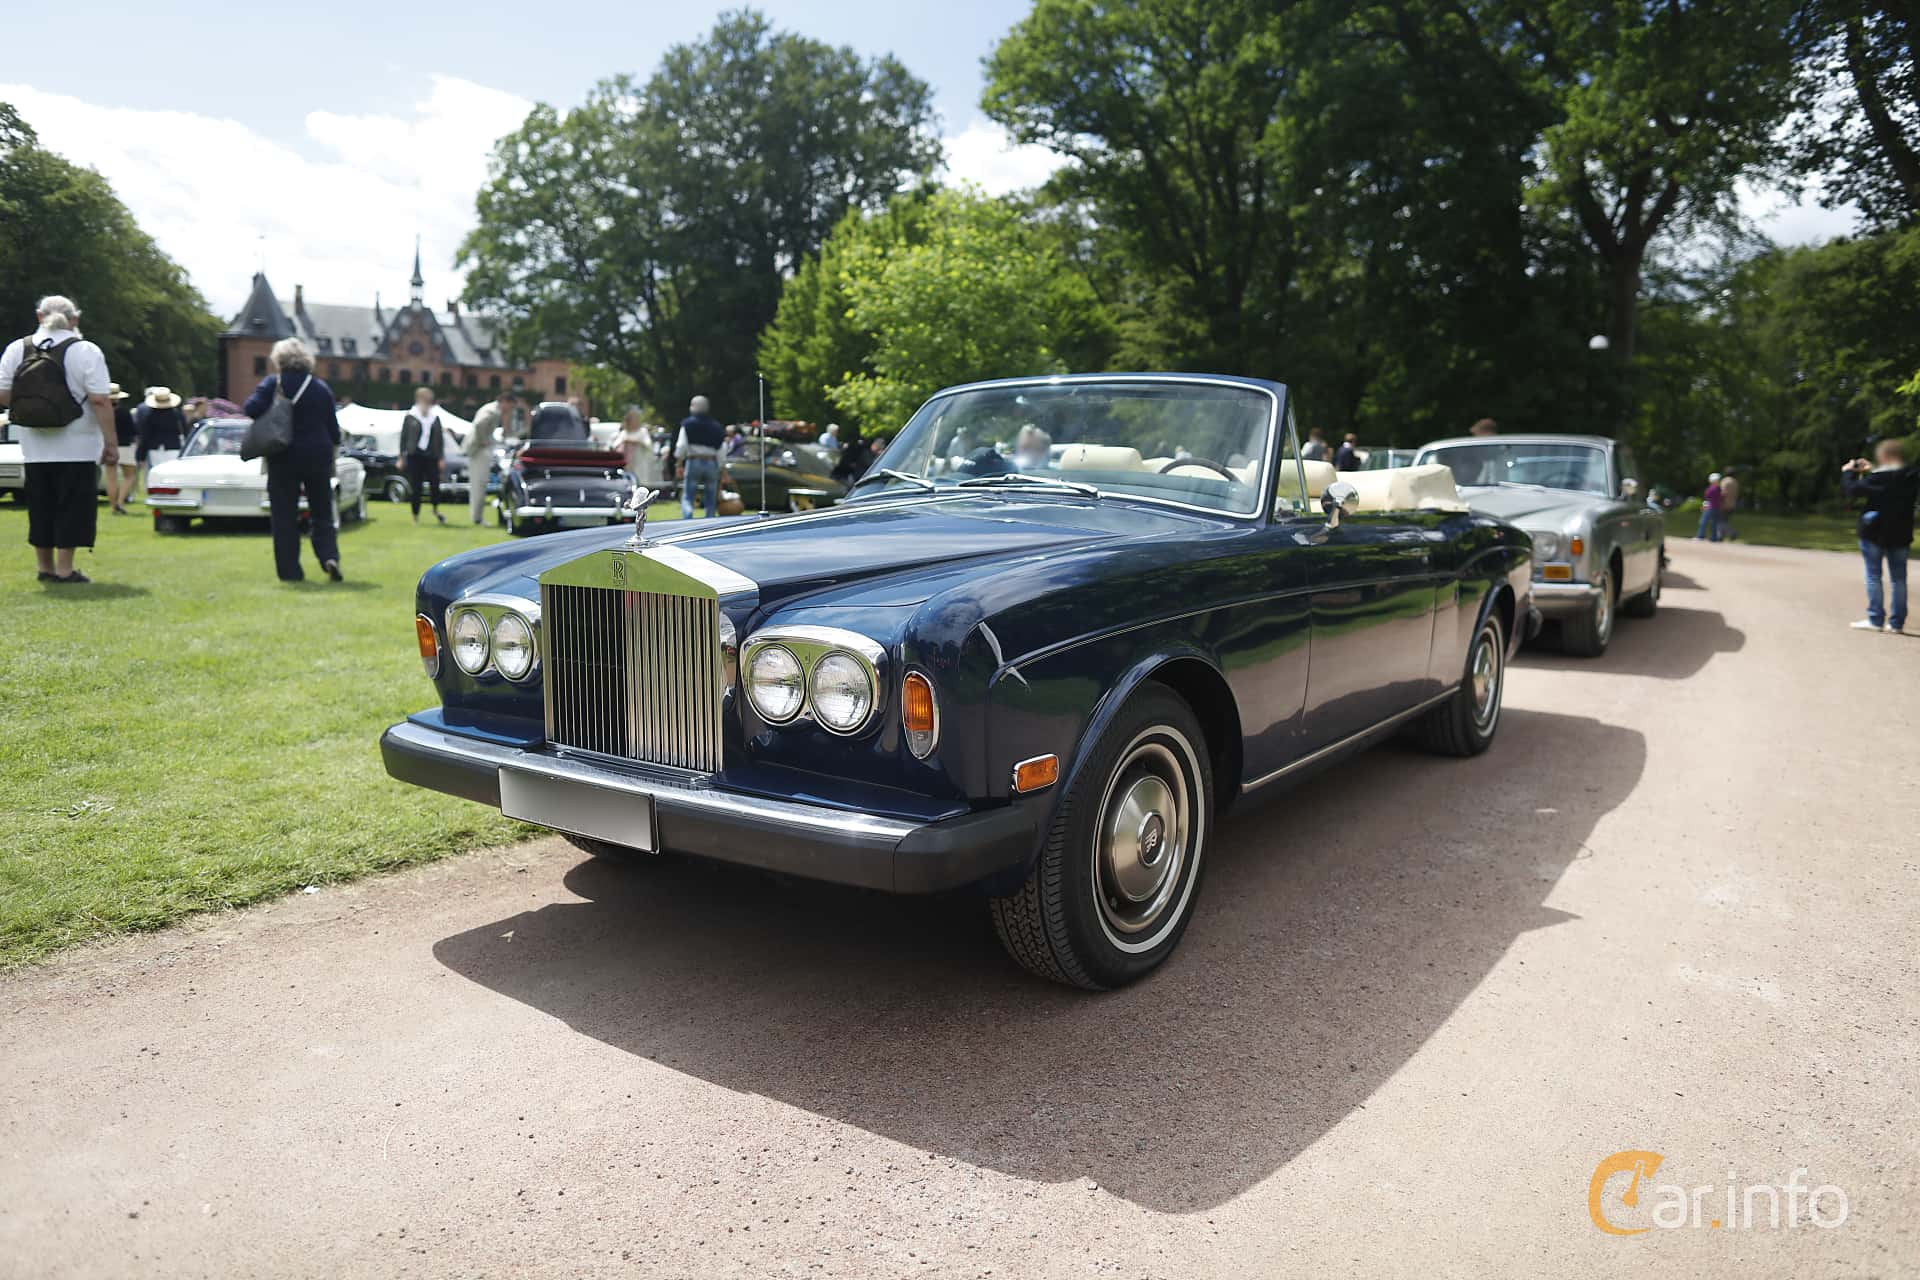 Rolls-Royce Corniche Convertible 6.8 V8 Automatic, 200hp, 1975 at Sofiero Classic 2019